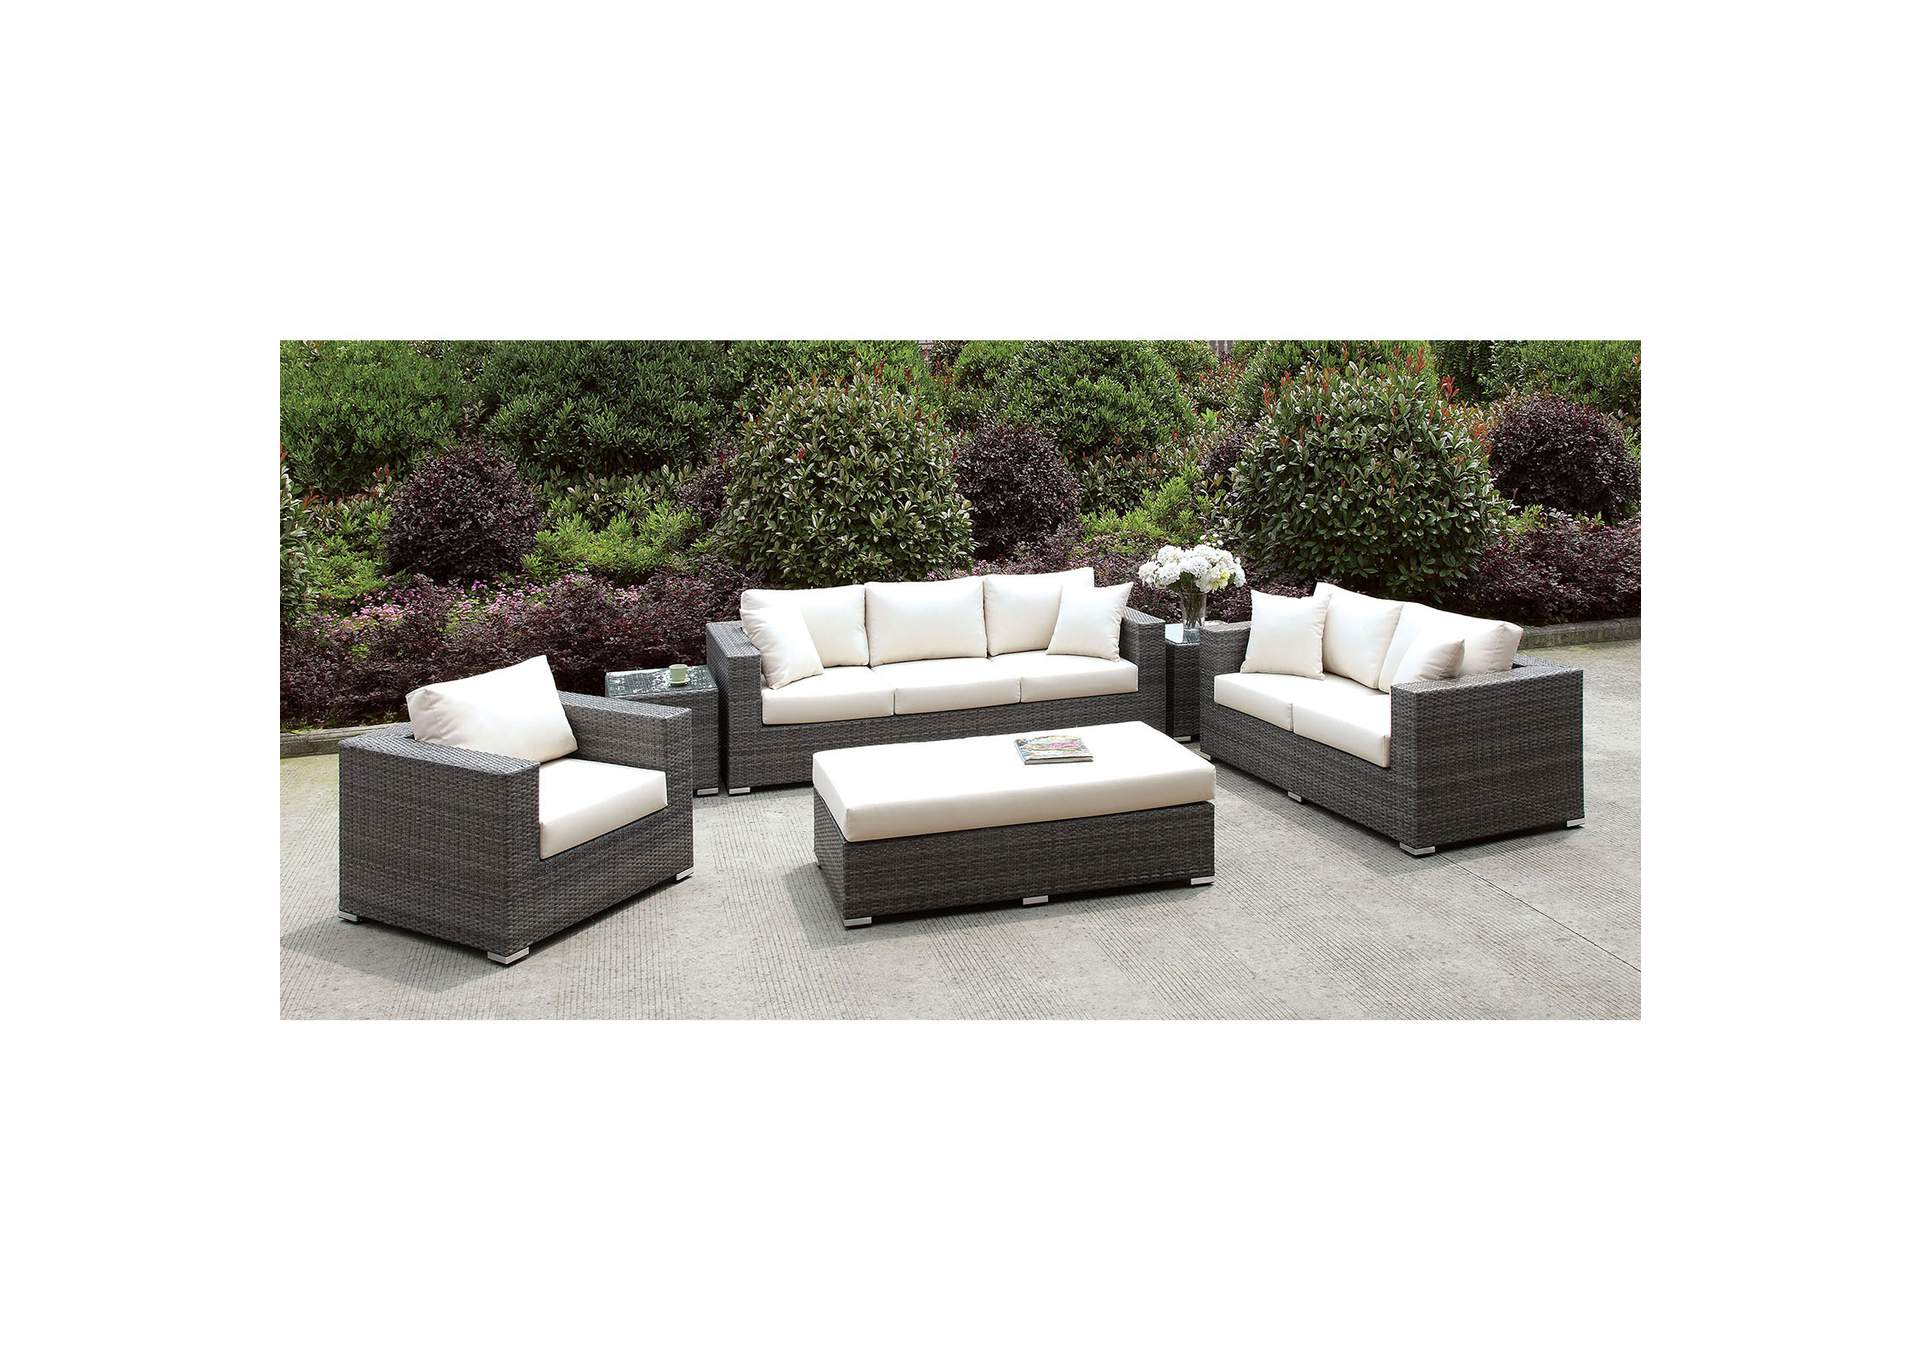 Somani Light Gray/Ivory Wicker 3 Piece Patio Set (Bench & 2 End Tables),Furniture of America